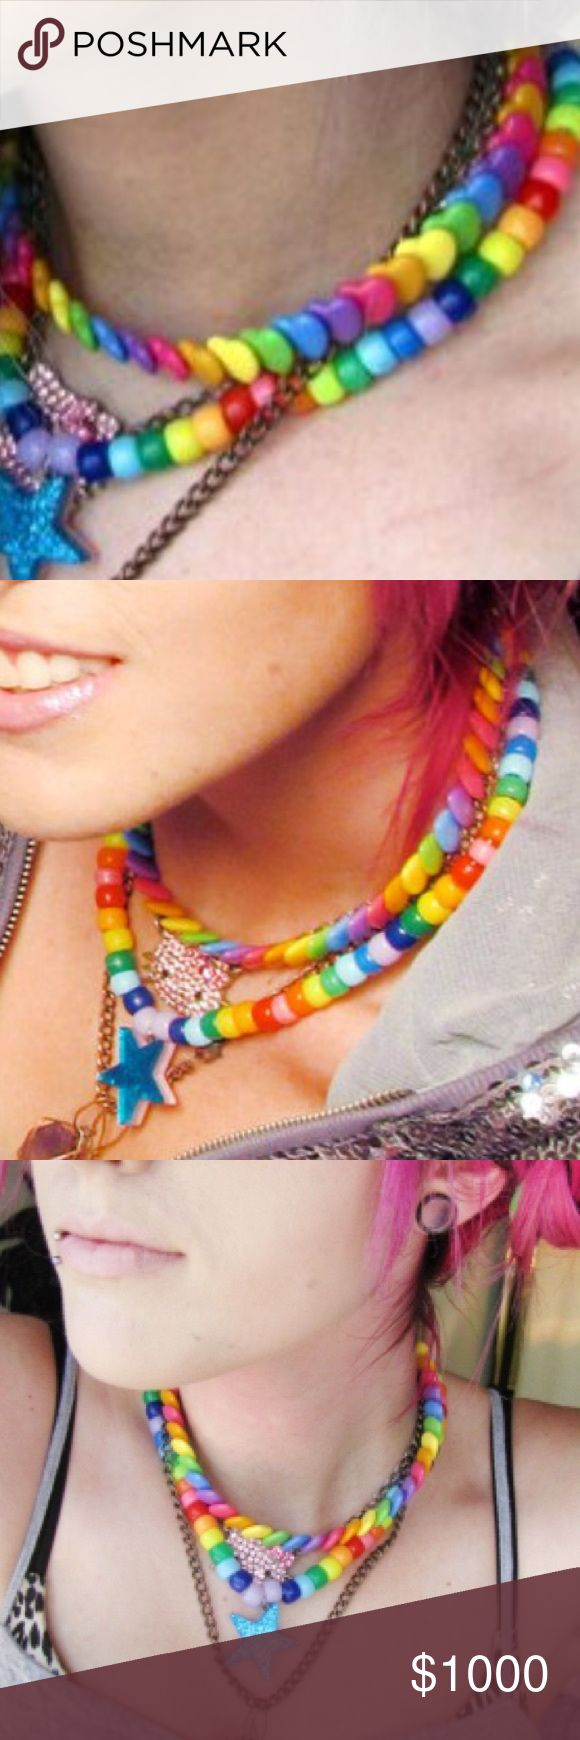 ISO rainbow heart beads necklace, kandi pony beads Leda Monster Bunny/HaiLedaBear wore this that a fan gave her. I think a bracelet version of this necklace was also sold somewhere. Please help! If you have one I'll buy it off you!! I think TARGET or WALMART used to sell this. THIS LISTING IS NOT FOR SALE. Jewelry Necklaces